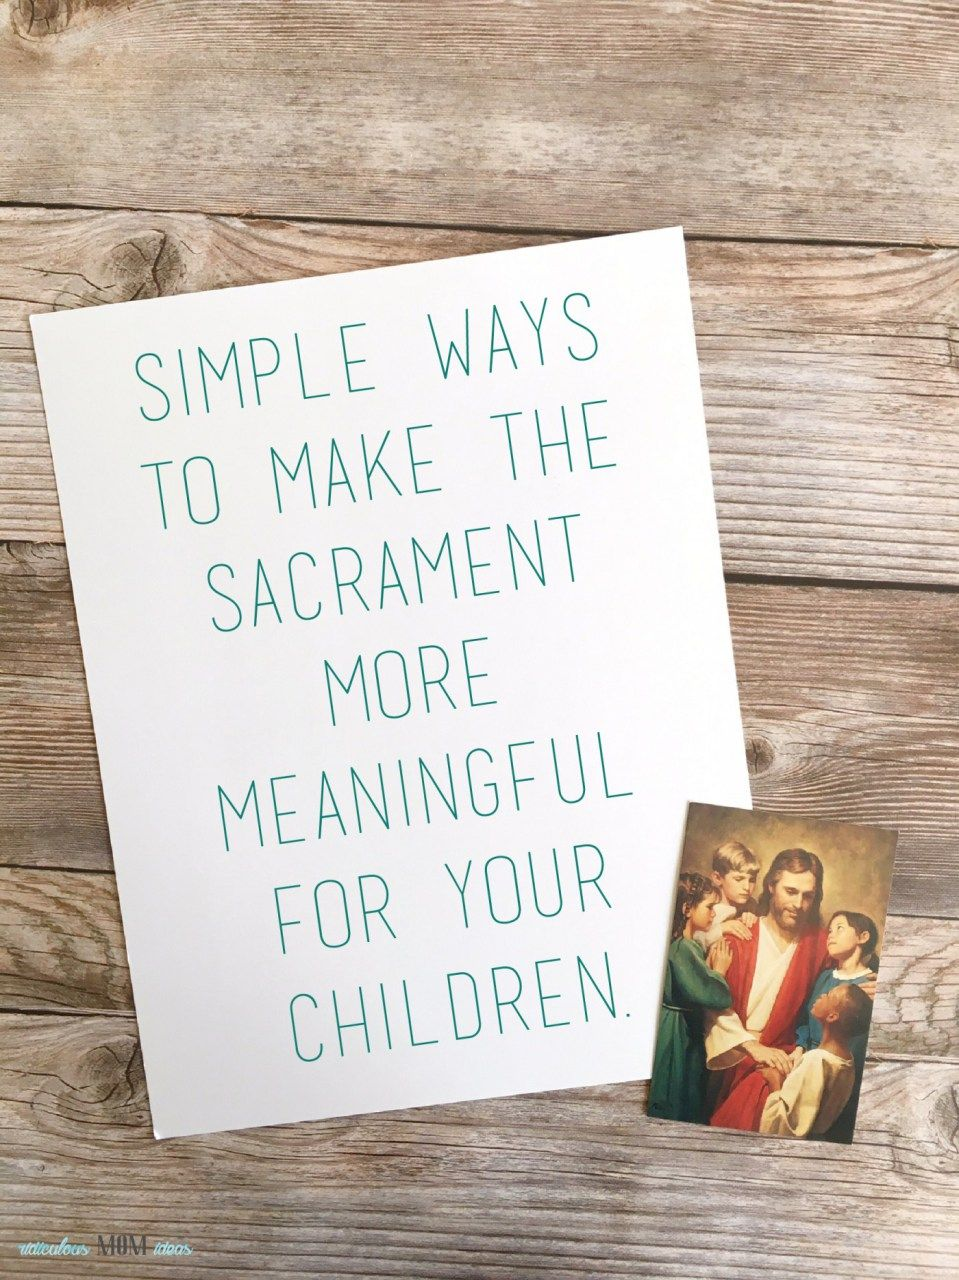 Simple Ways To Make The Sacrament More Meaningful For Your Children ...